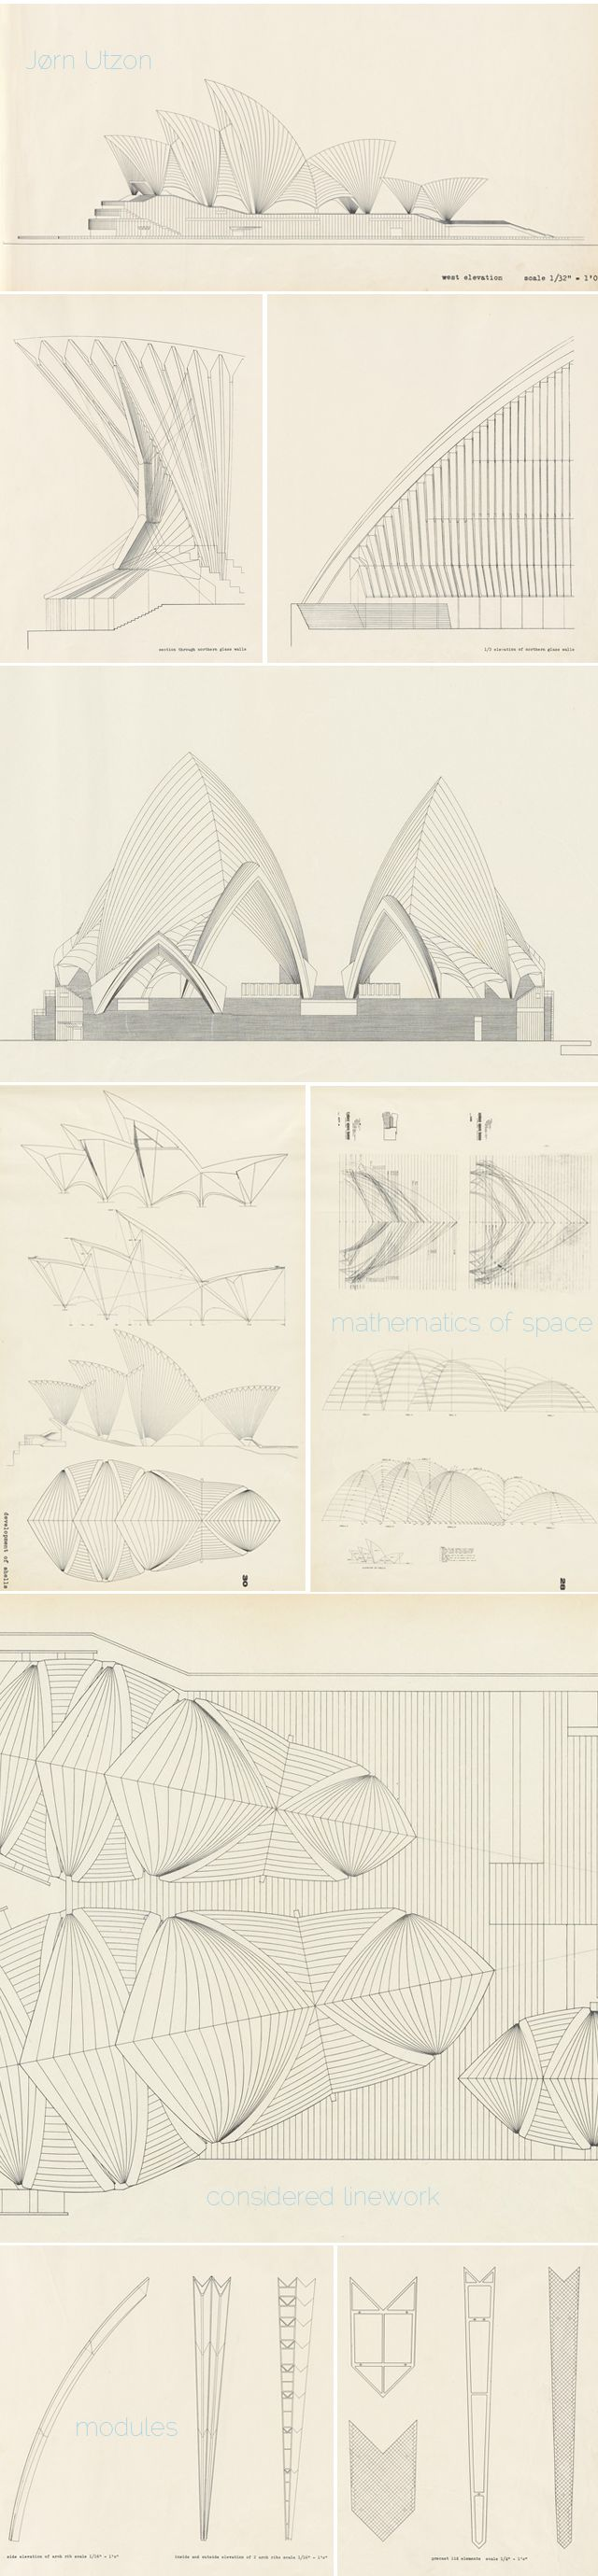 1000+ images about rchitectural Drawings on Pinterest - ^